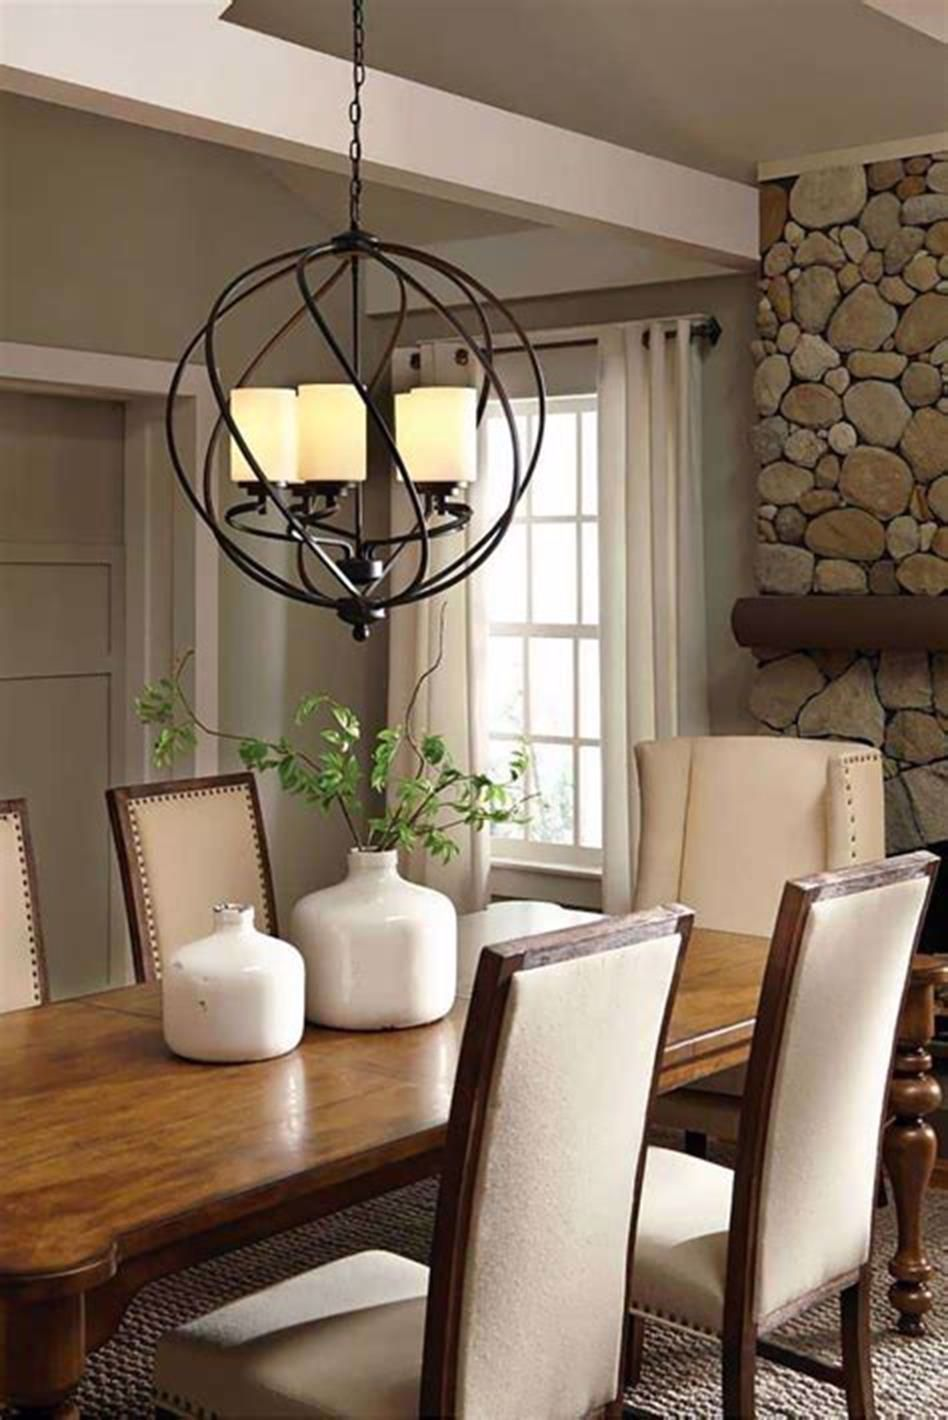 45 Best Modern Chandelier Dining Room Ideas For 2019 33 In 2020 Dining Room Light Fixtures Dining Room Lighting Modern Chandelier Dining